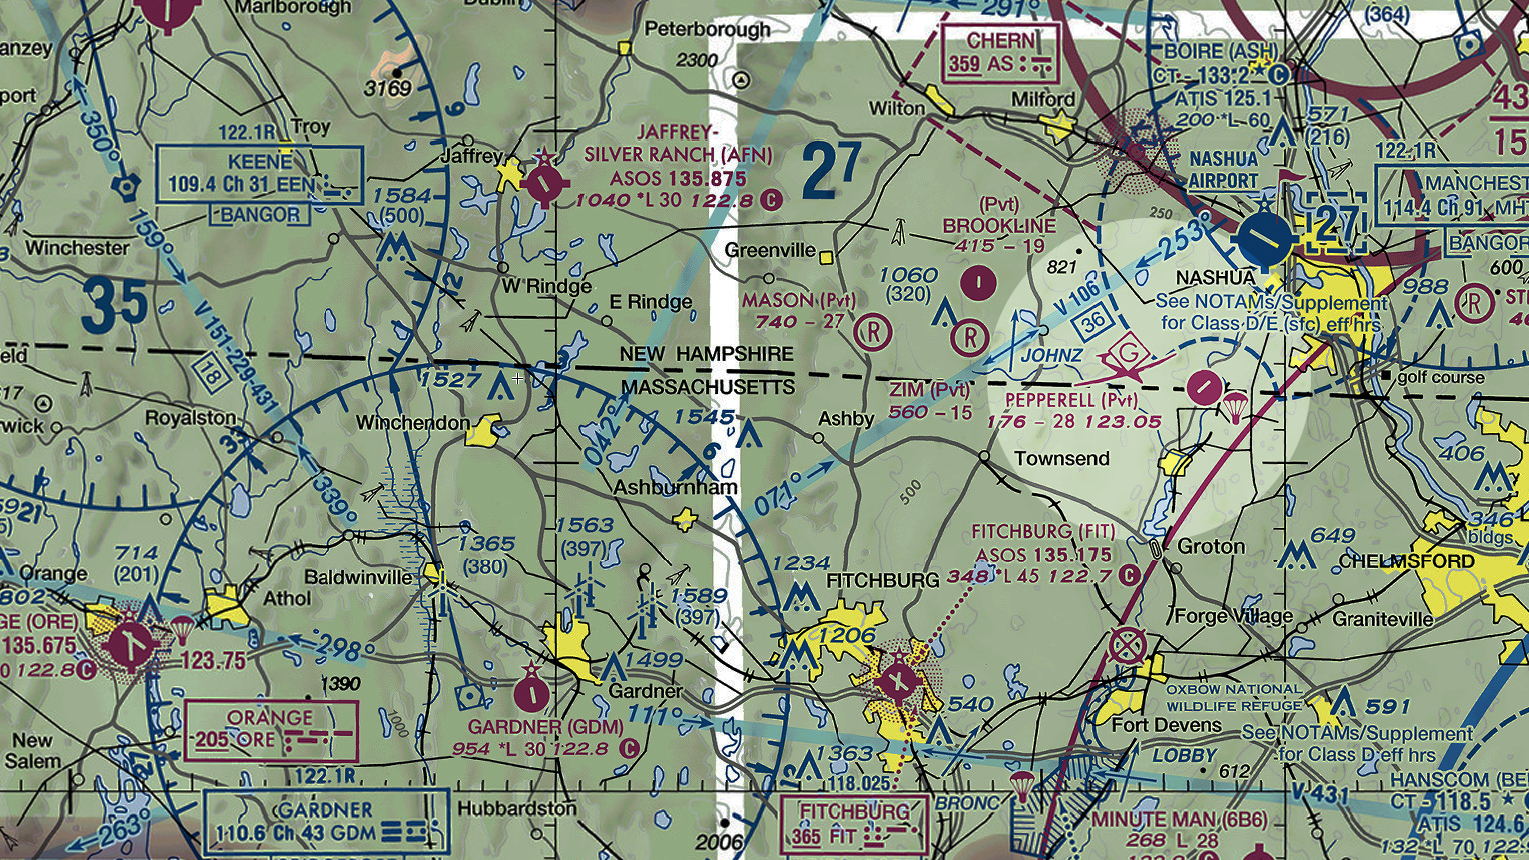 Chart illustrating parachute jumping area between Fitchburg and Boire airports.